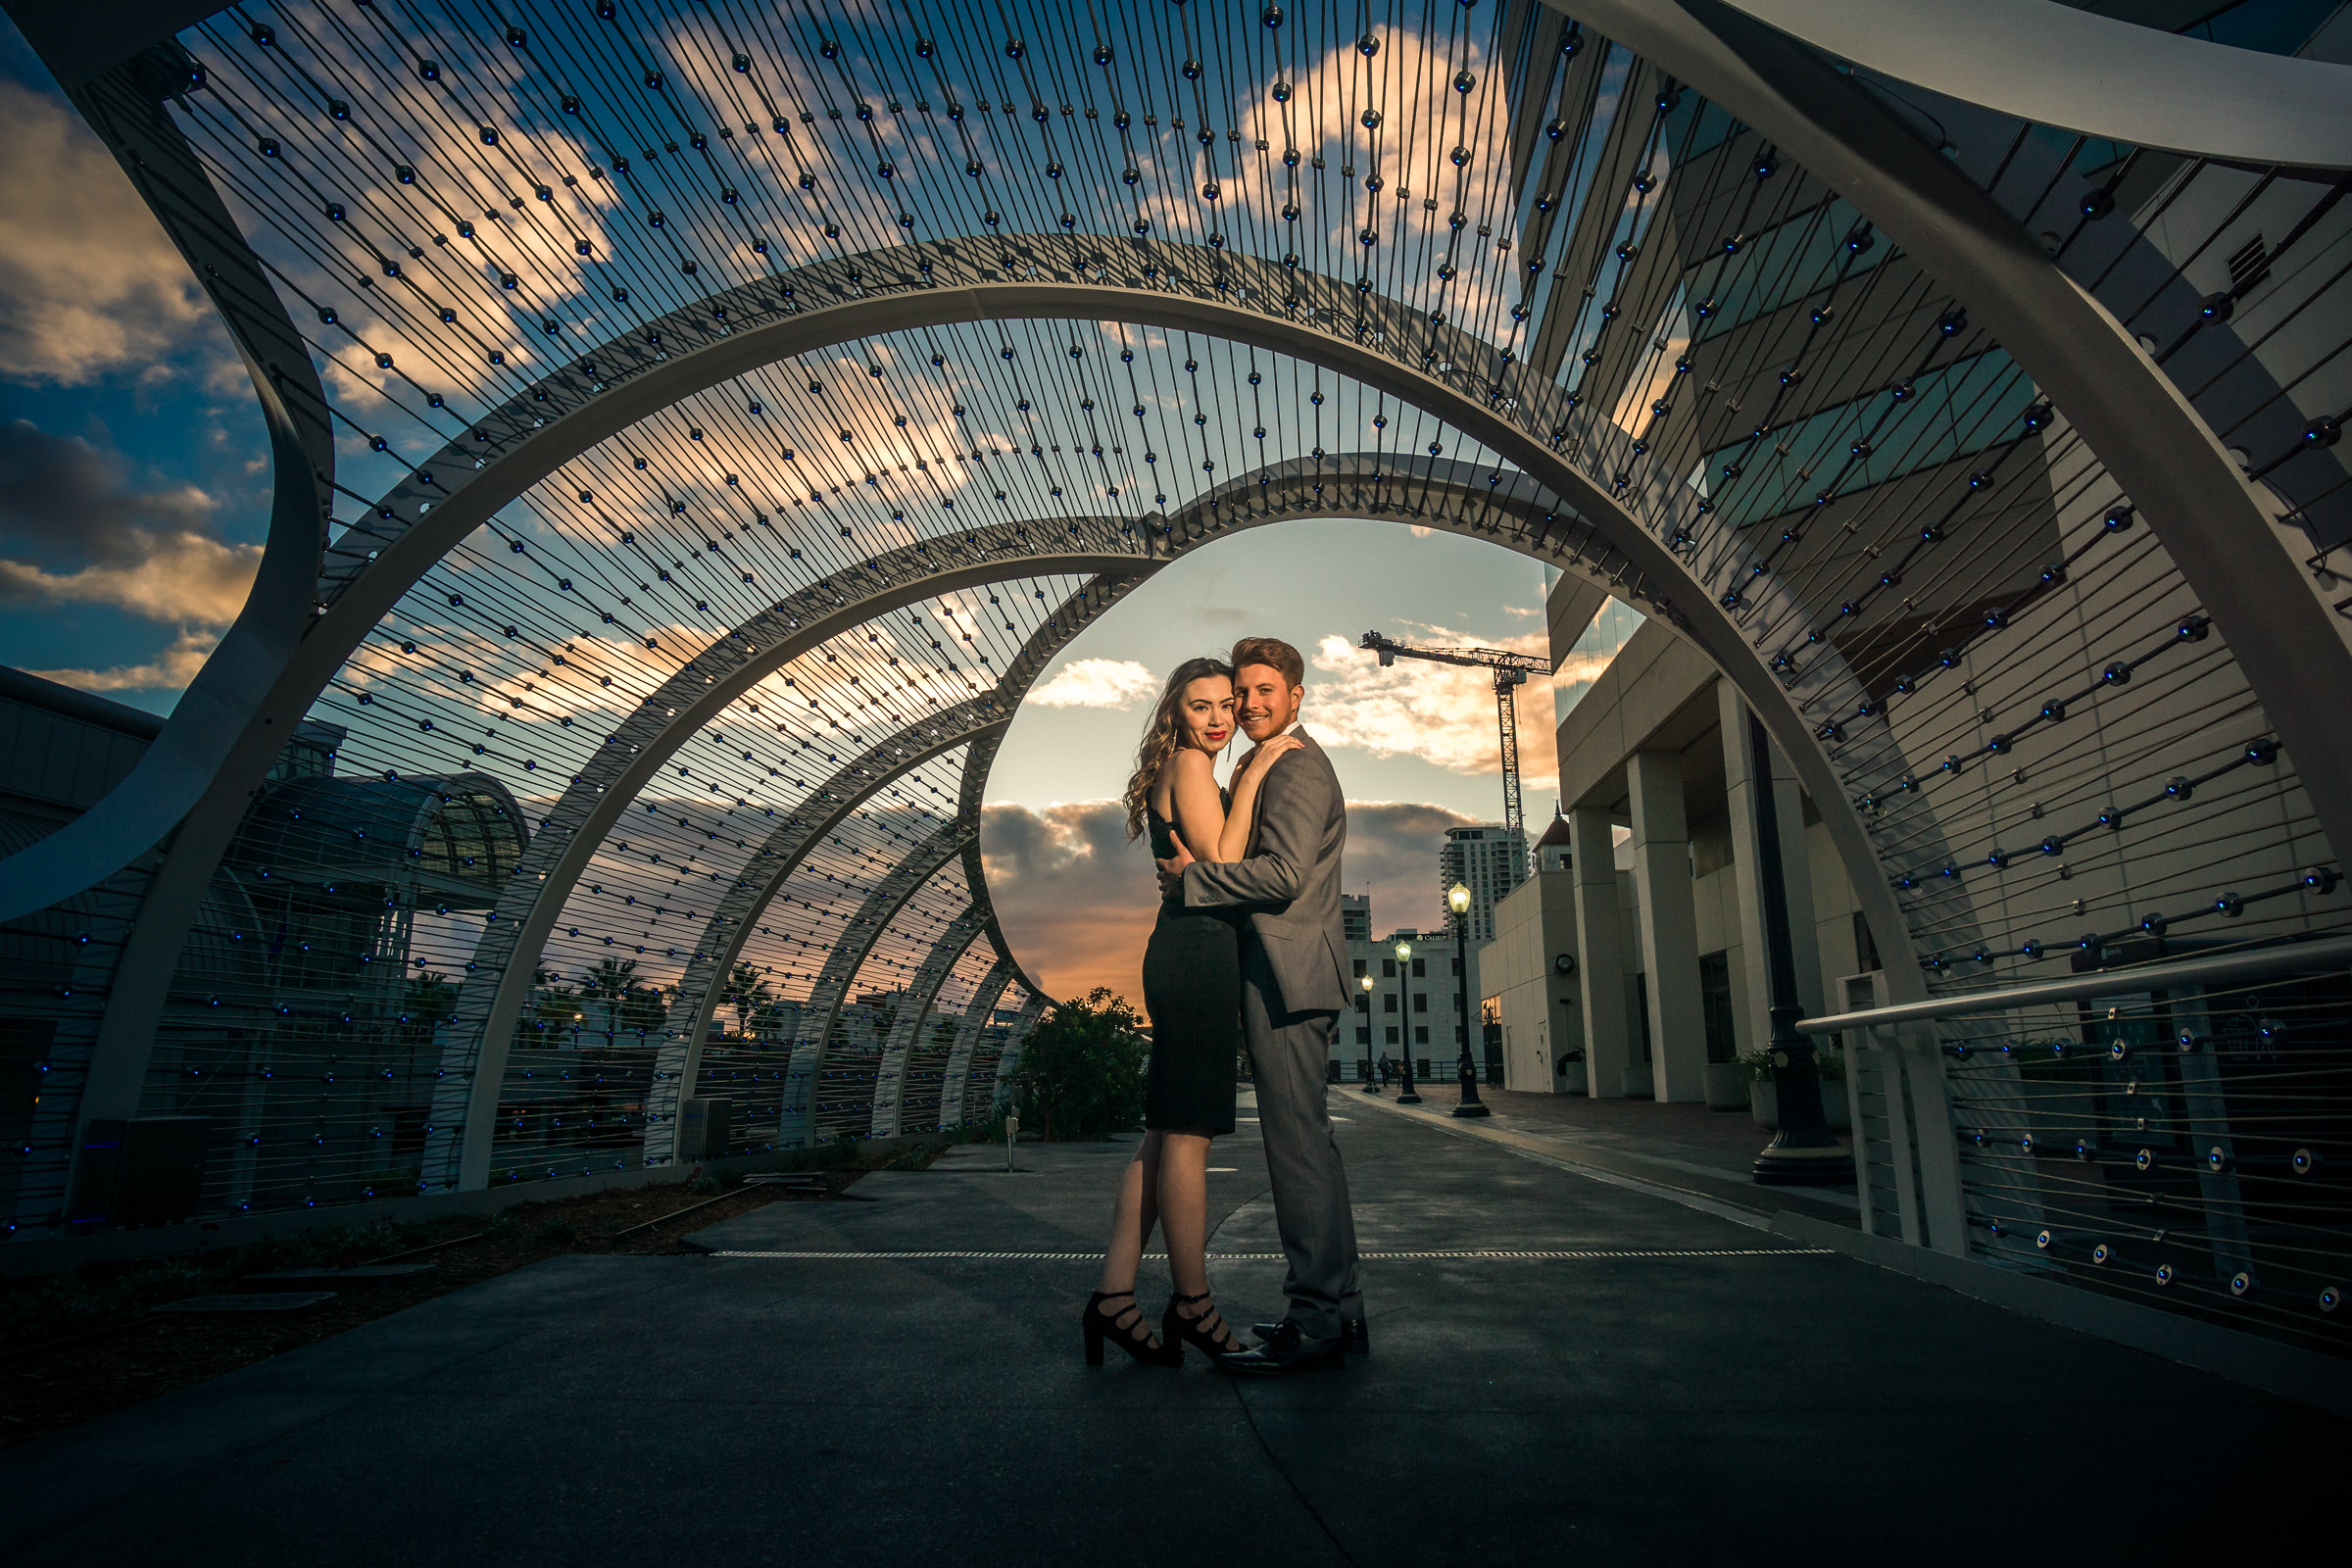 Photo taken at Golden hour of a couple under the rainbow bridge in downtown Long Beach